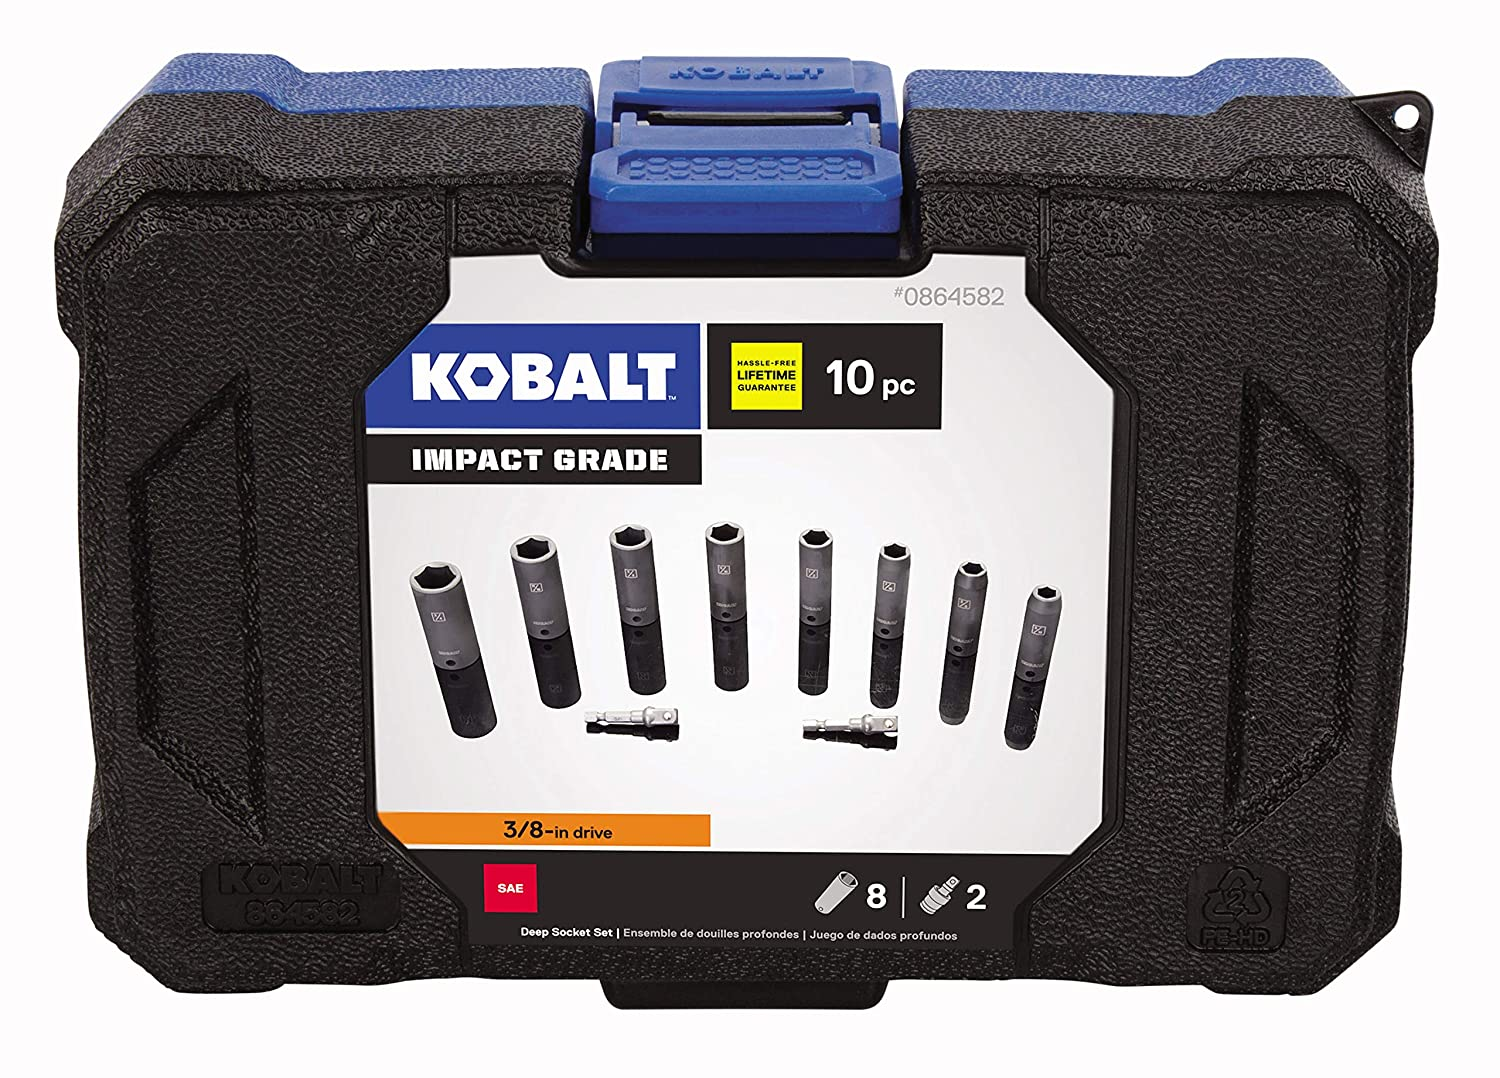 Inch and 3//4-Inch Sockets 9//16 5//8 1//2 3//8 11//16 Kobalt 864582 10-Piece 3//8-Inch Drive 6-Point Deep Impact Socket Set includes 5//16 7//16